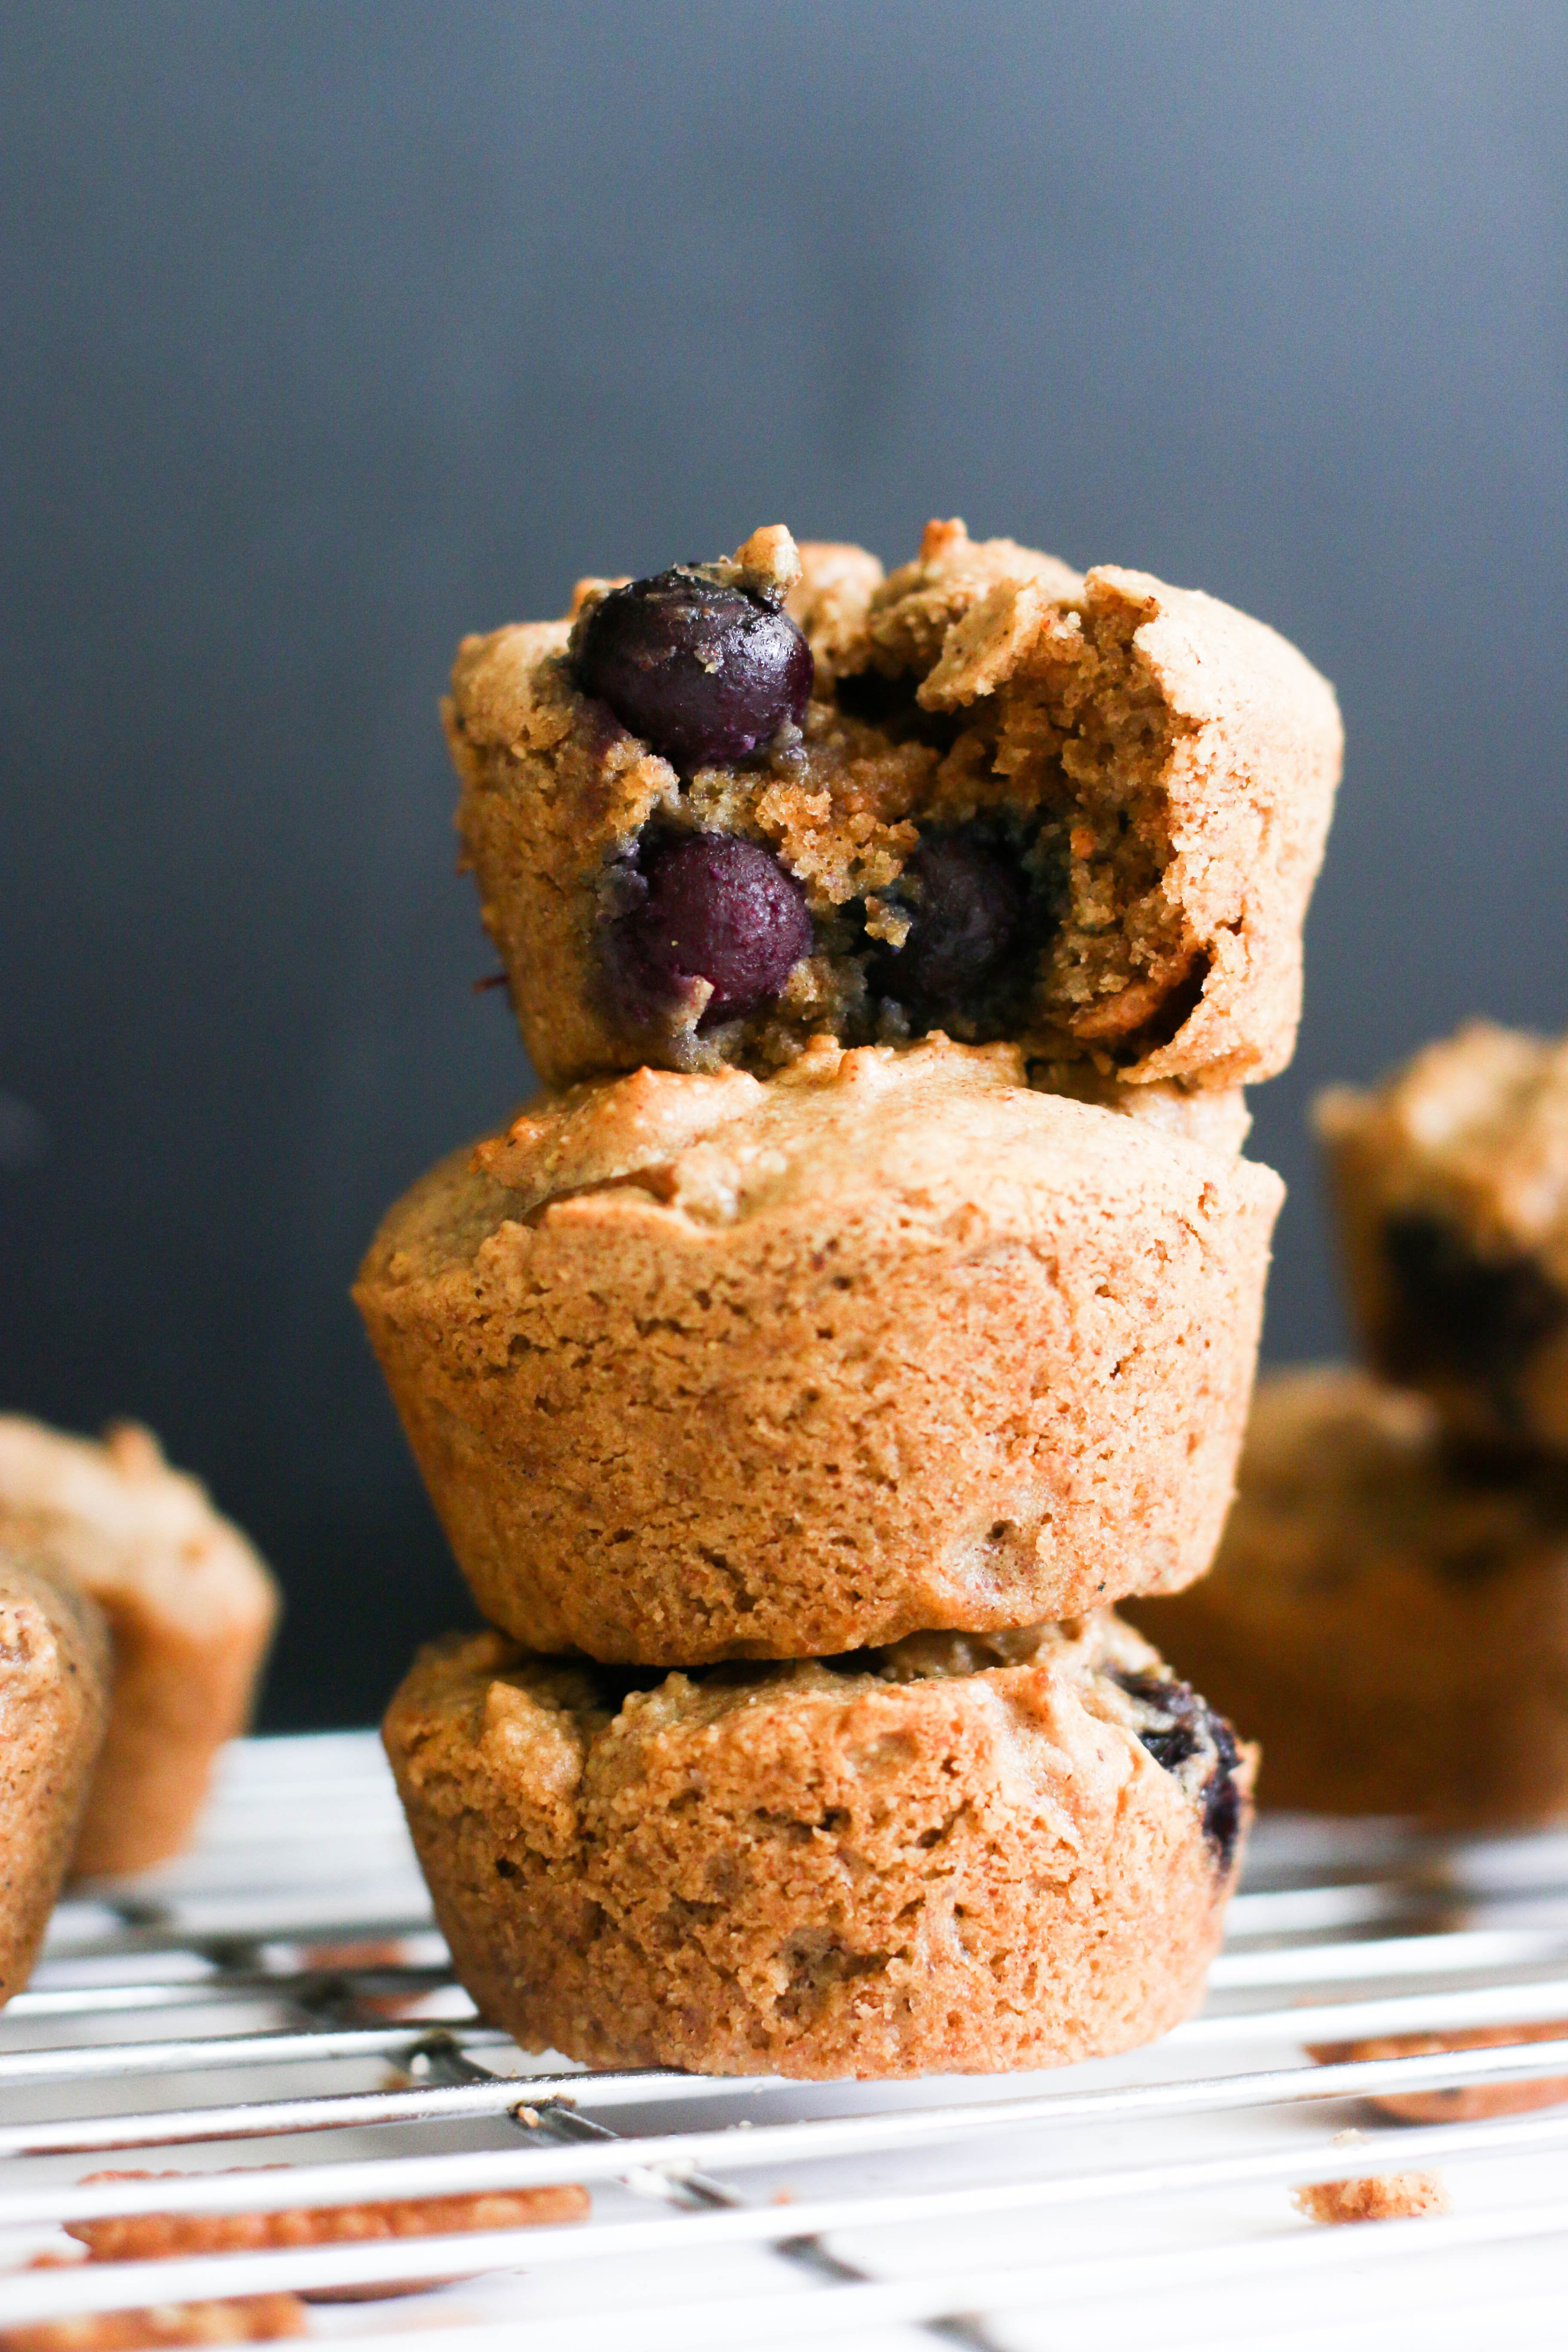 These paleo blueberry pecan muffins are full of healthy fats, are protein packed, require minimal ingredients, and are fill with flavor. They come together in under an hour and make for a great, healthy muffin.